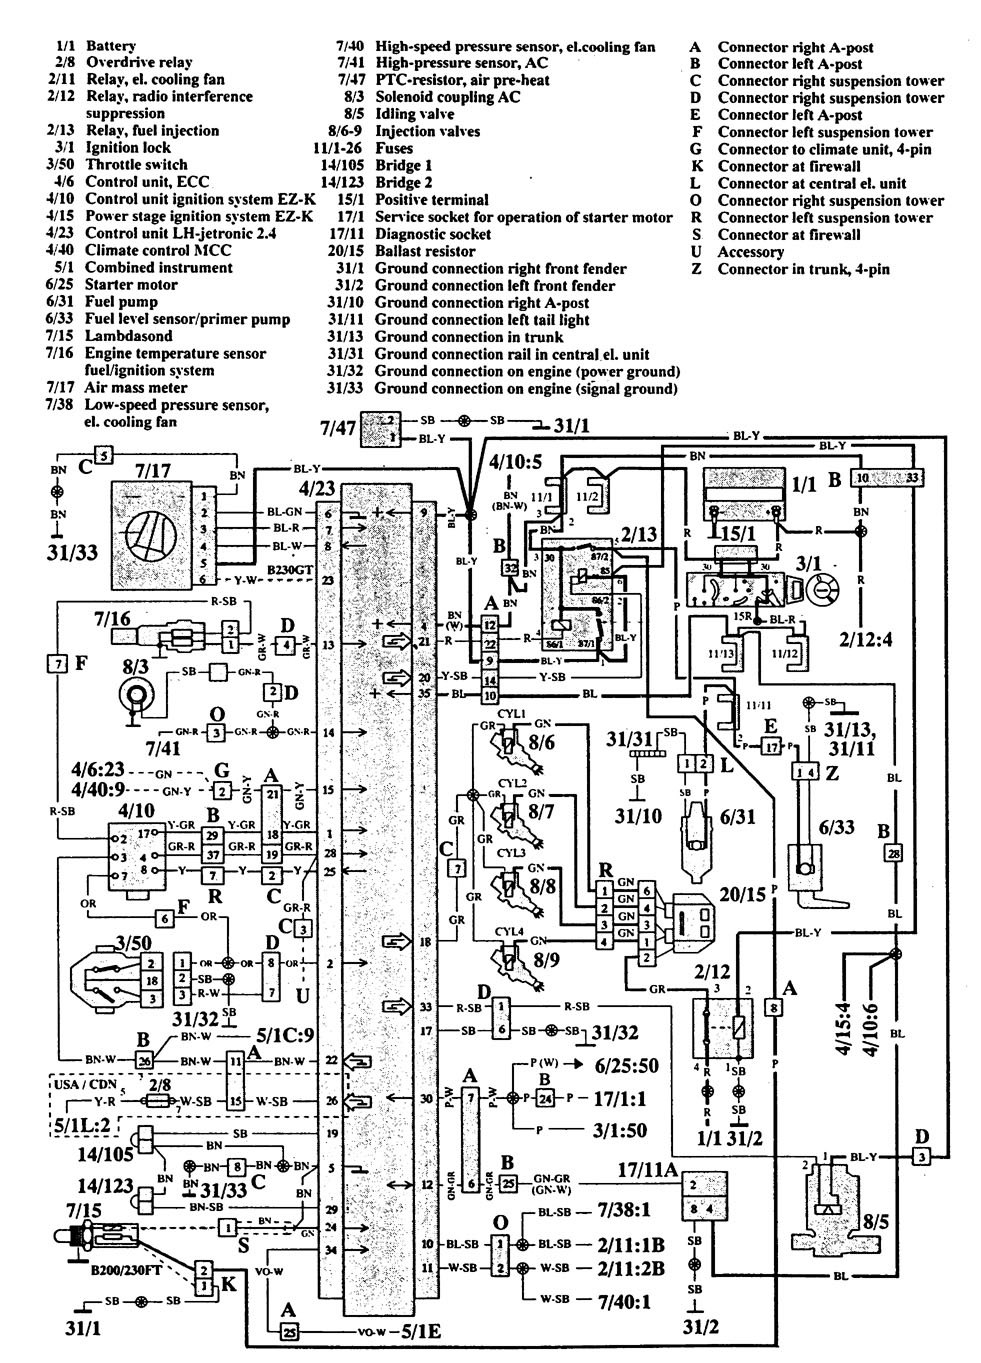 Volvo 850 Wiring Diagram Schematic Diagrams Tips 1996 Radio For A 1993 Trusted Fuse